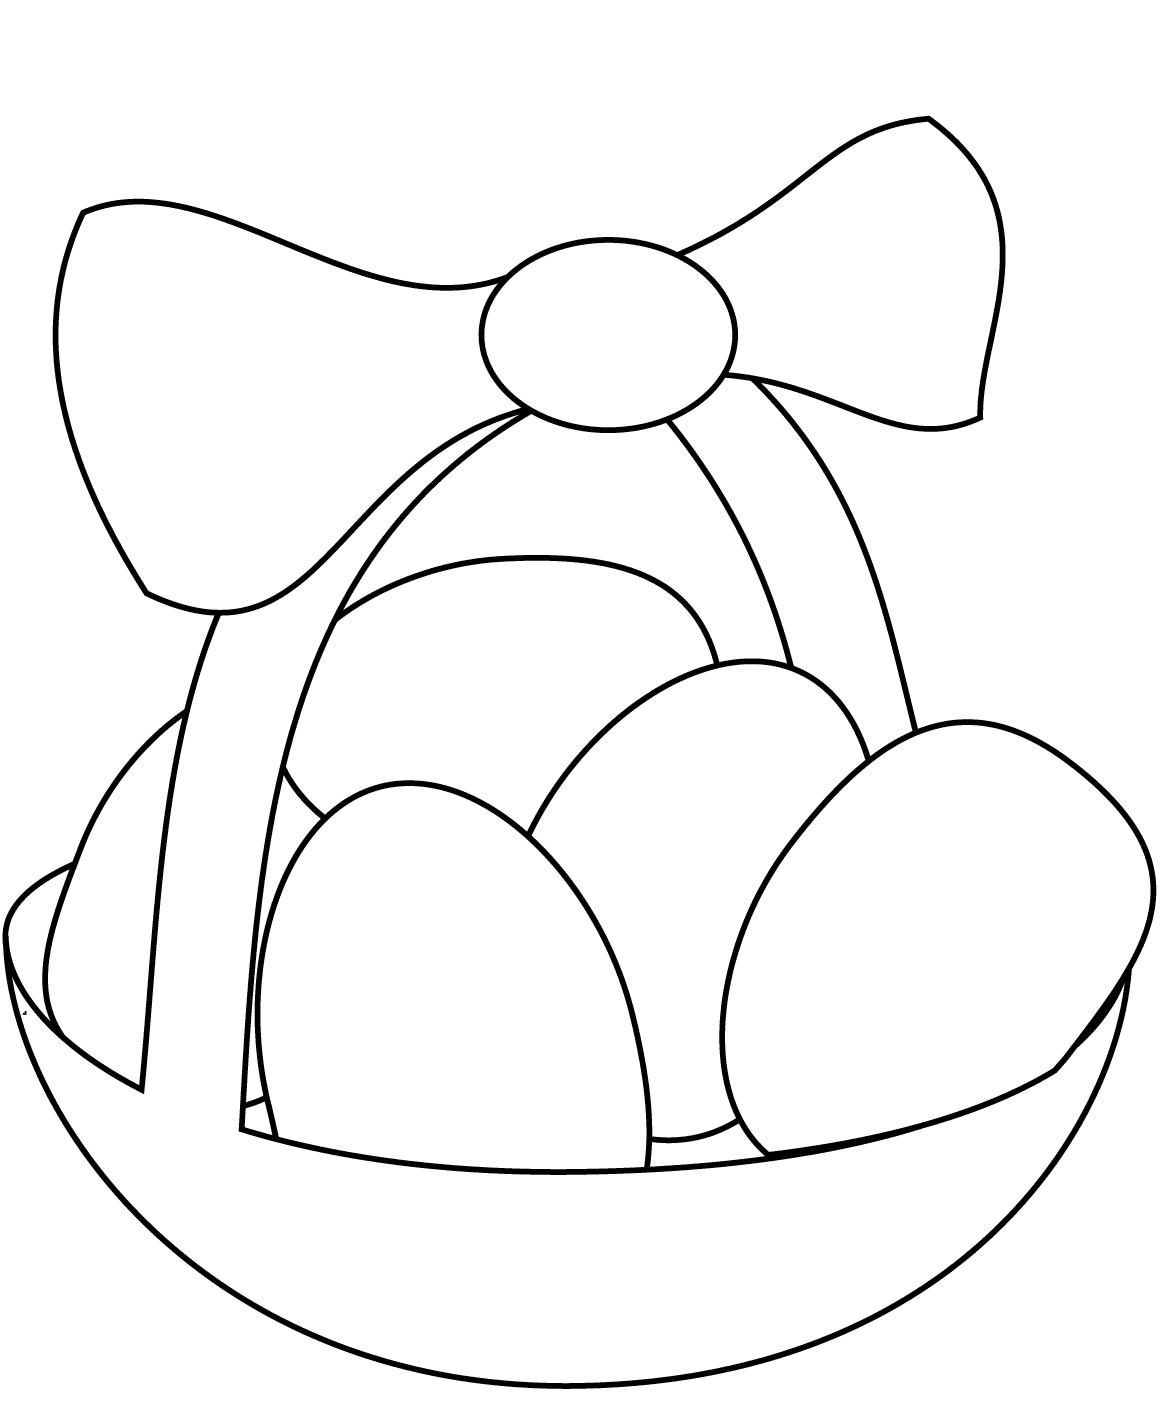 Simple Easter Basket Coloring Page